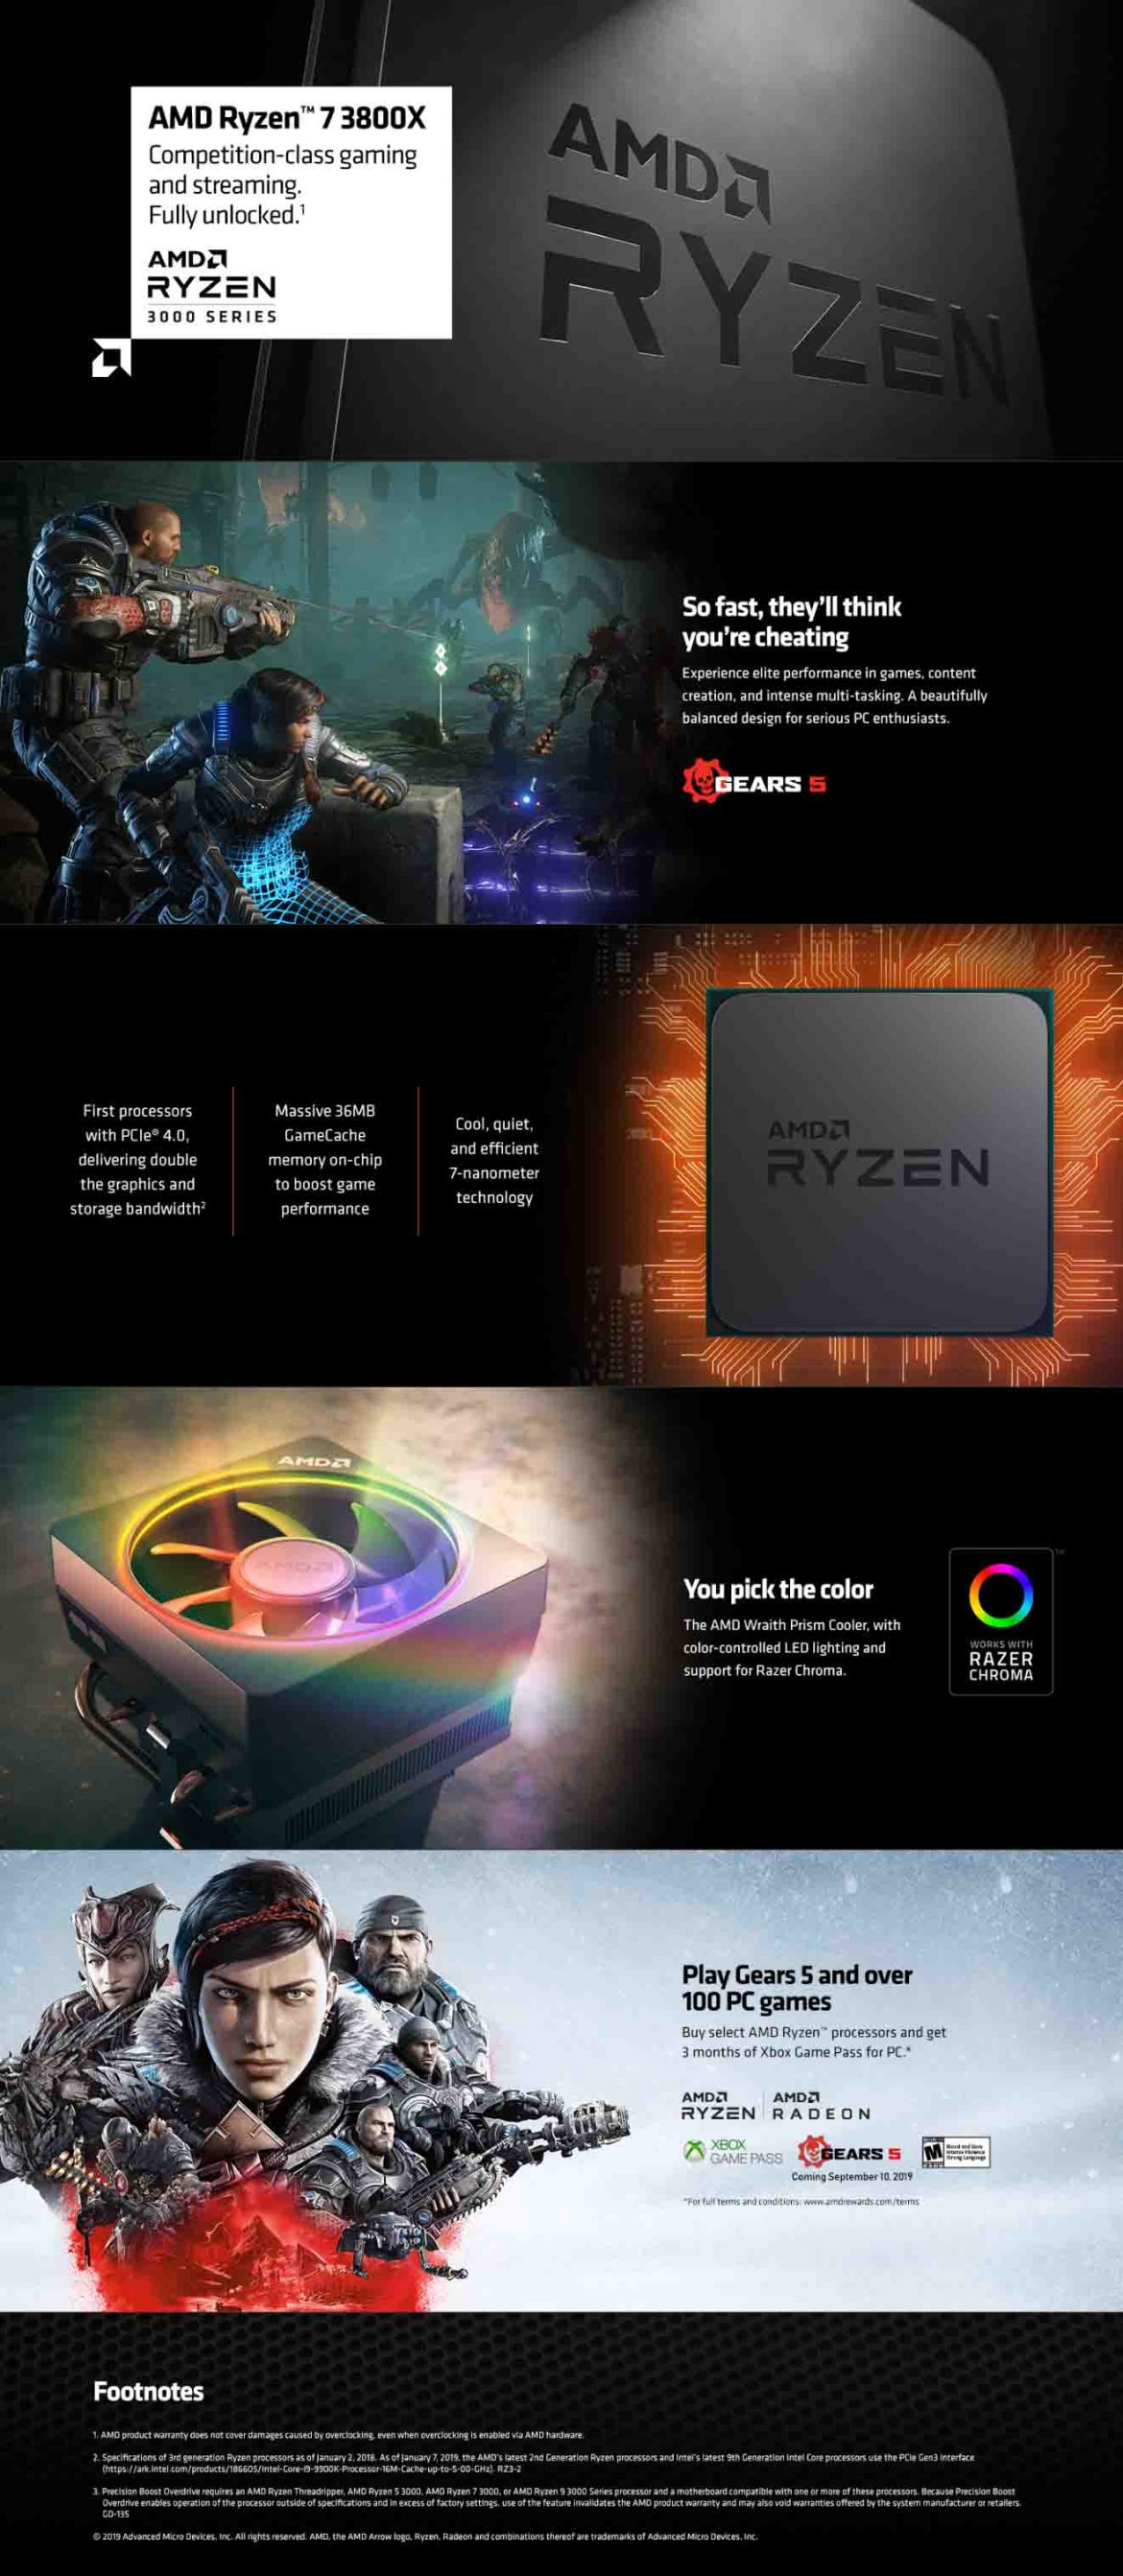 AMD-Ryzen-7-3800X-Desktop-Processor-Details-Eitimad